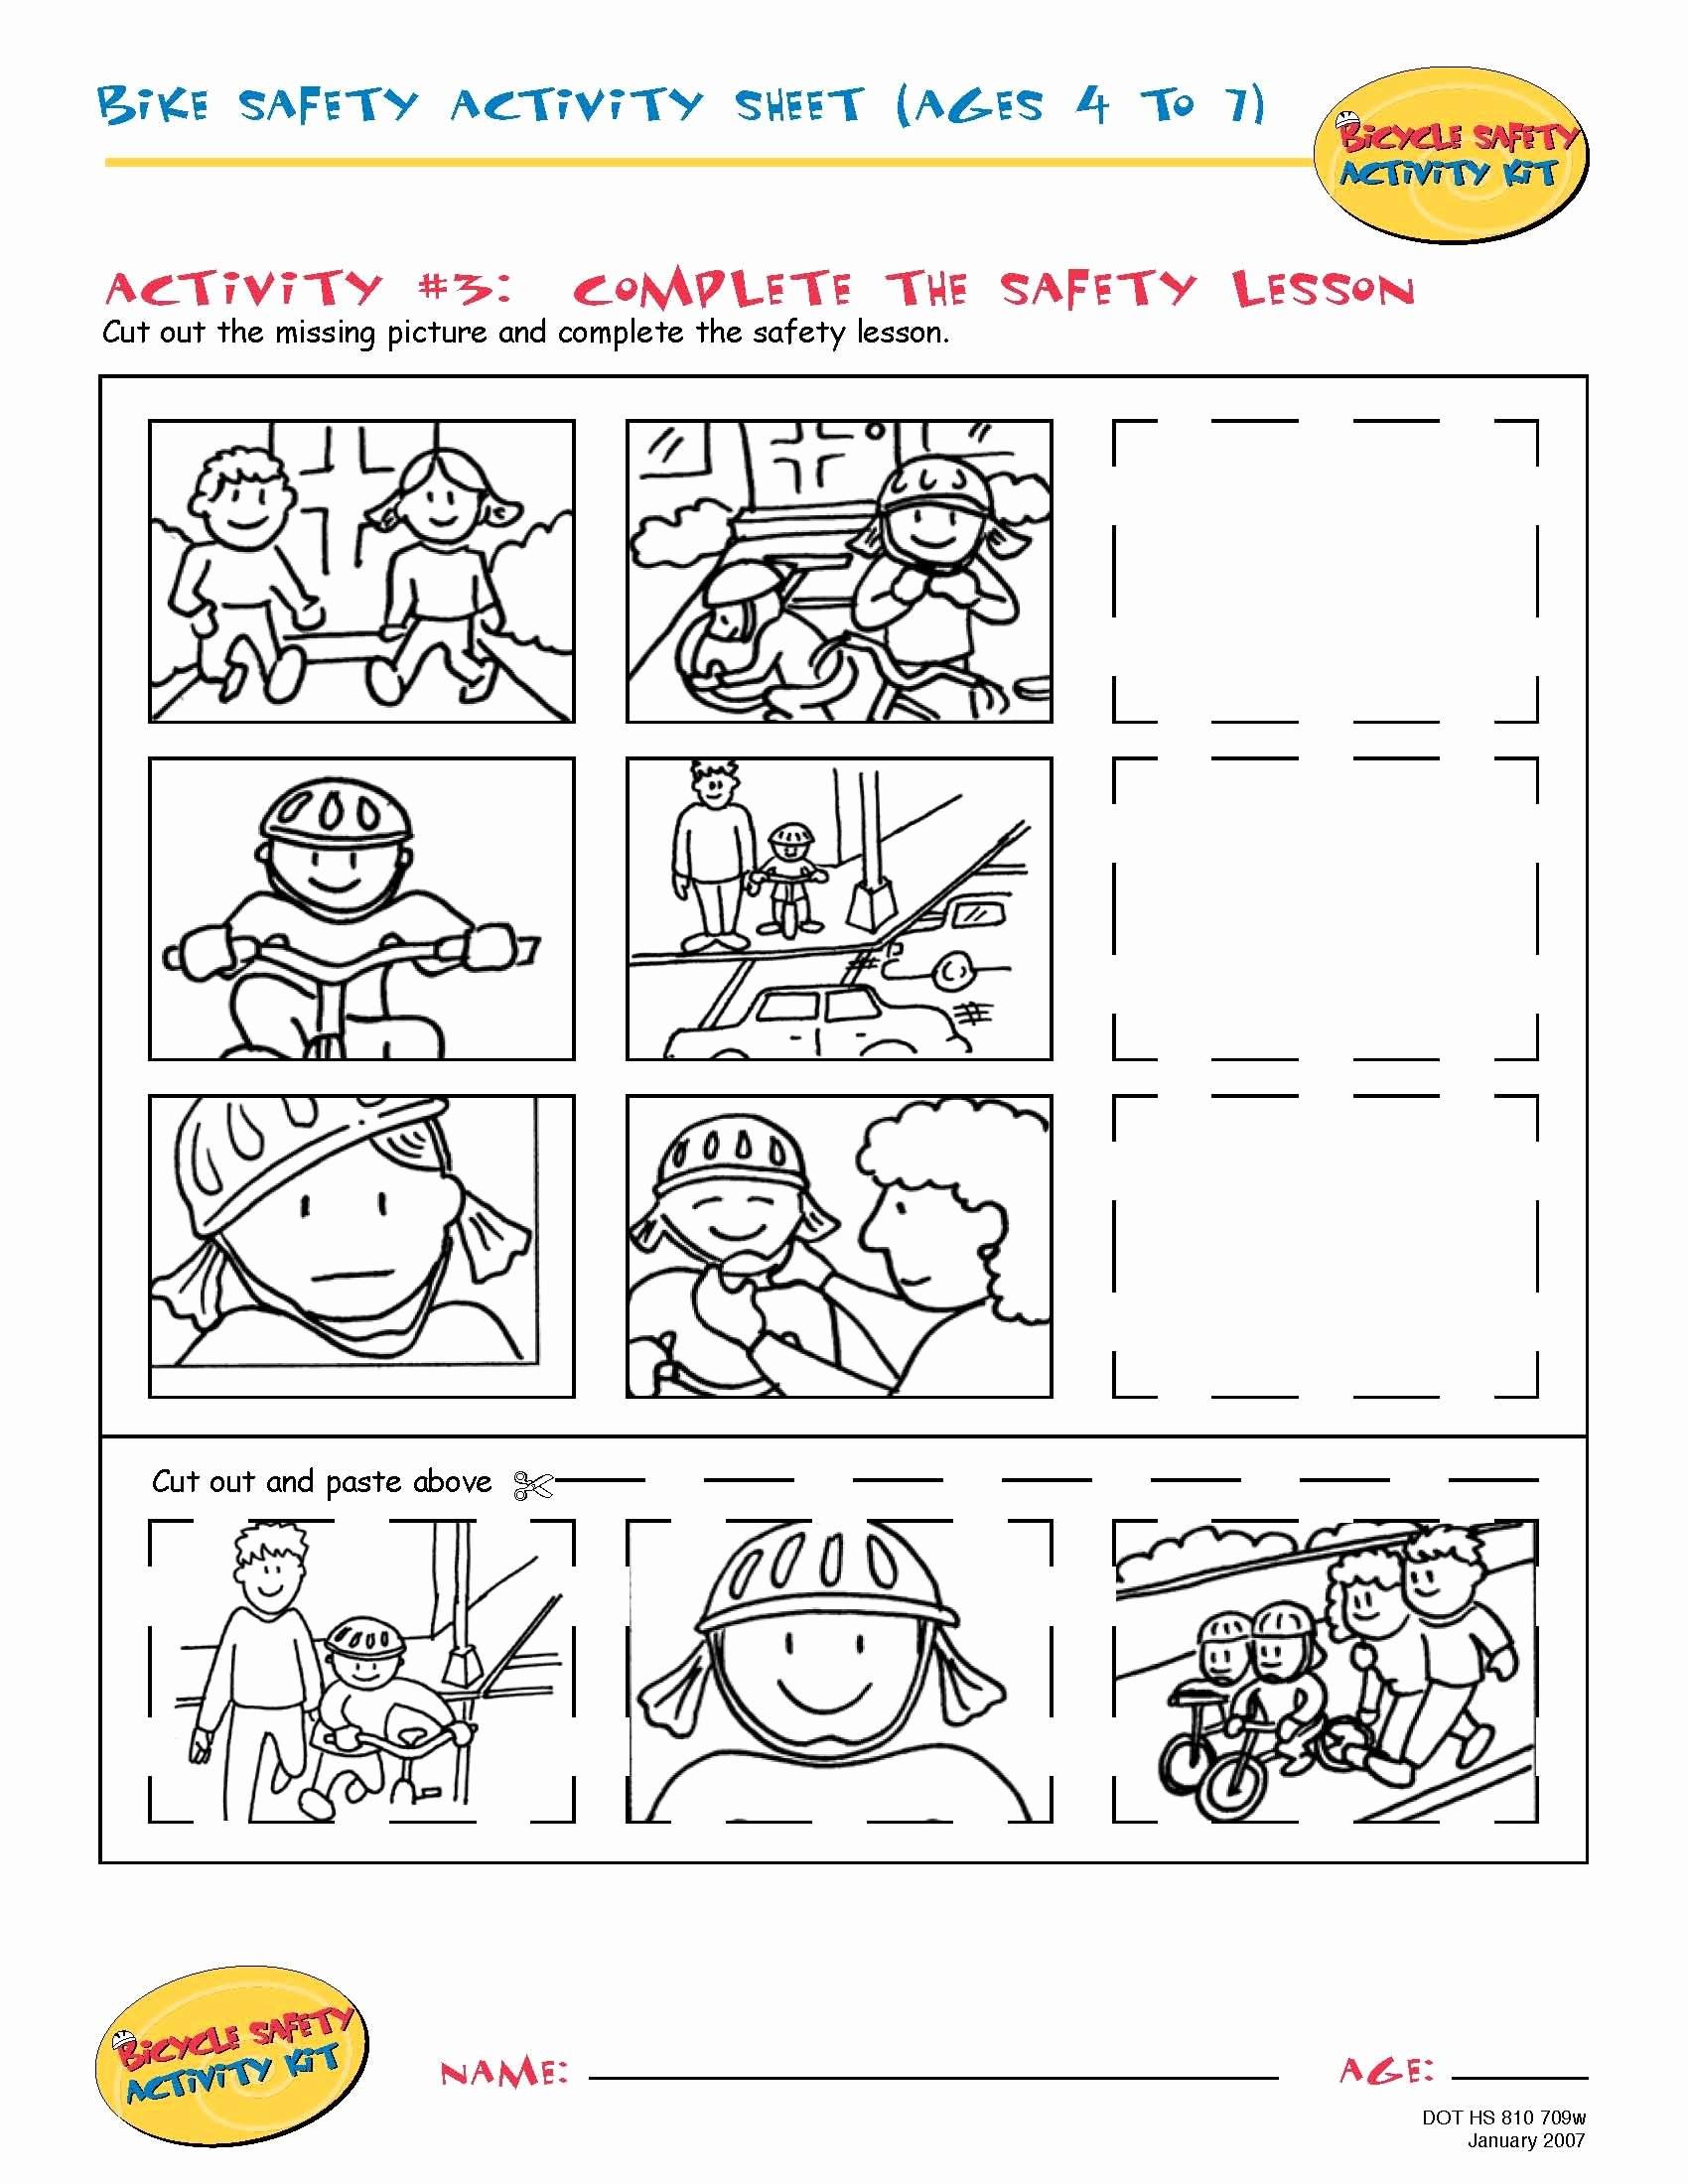 Pedestrian Safety Worksheets for Preschoolers Lovely Bike Safety Activity Sheet Ages 4 to 11 Plete the